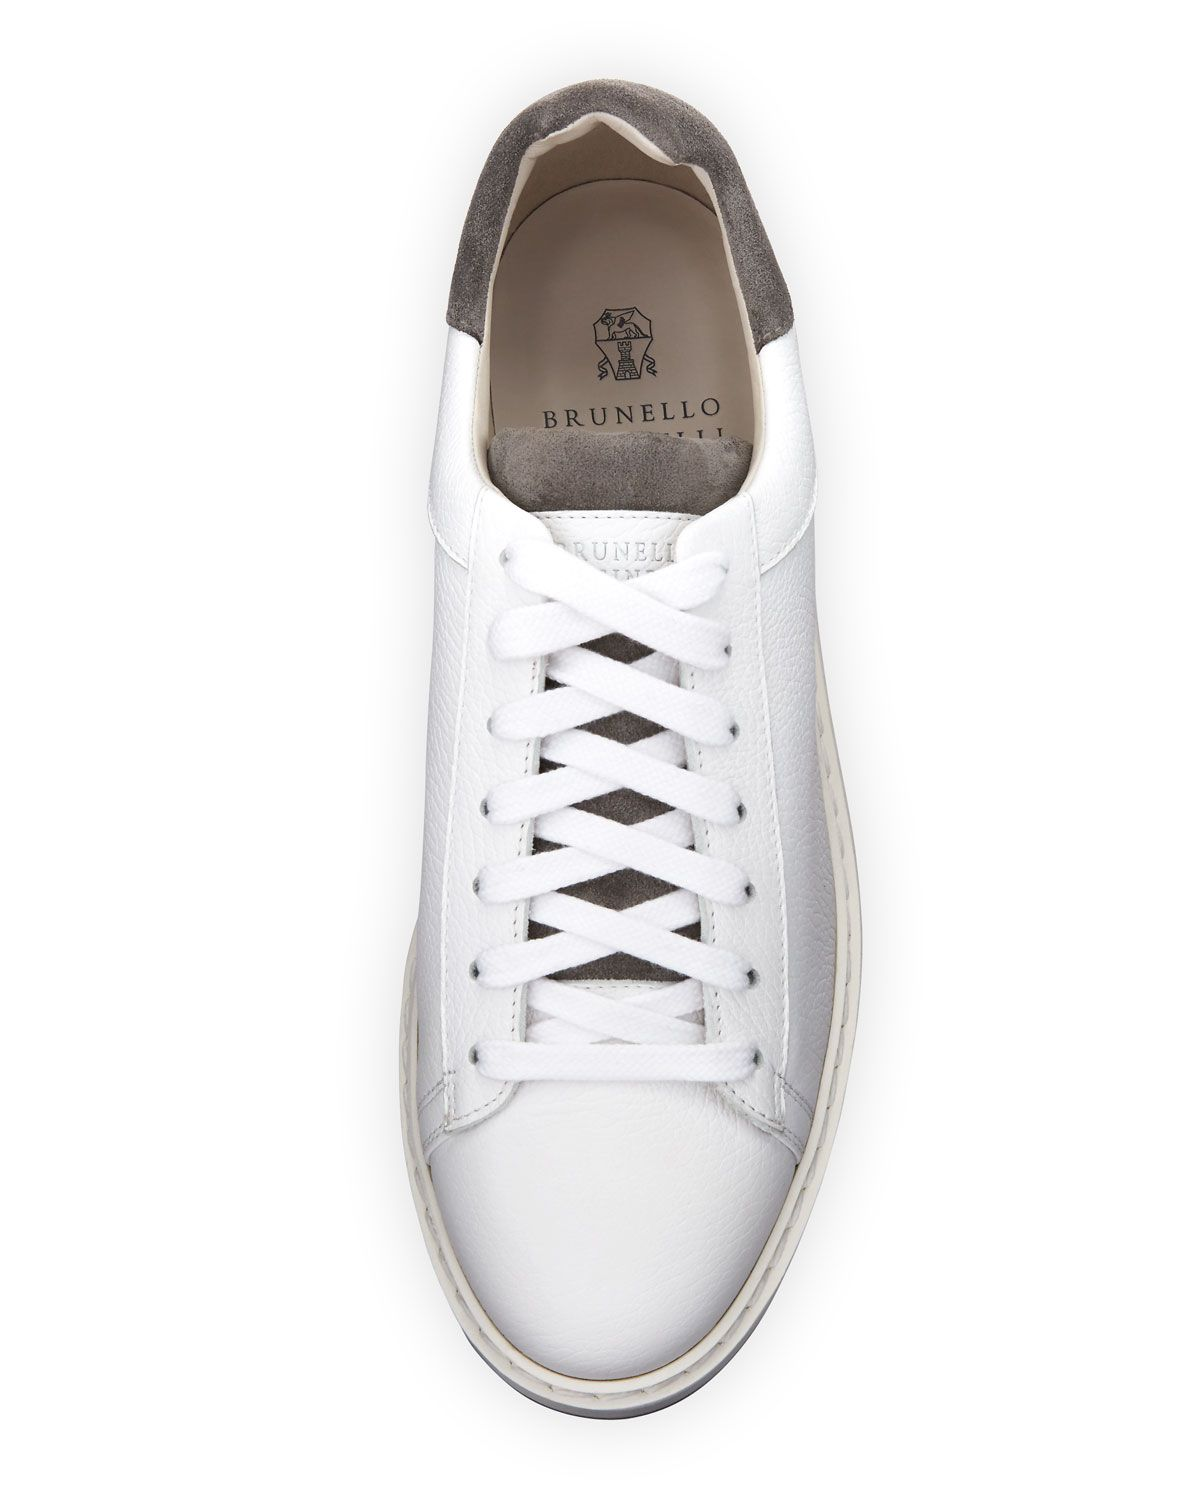 Brunello Cucinelli Icaro Low Top Sneaker In Calf Leather With